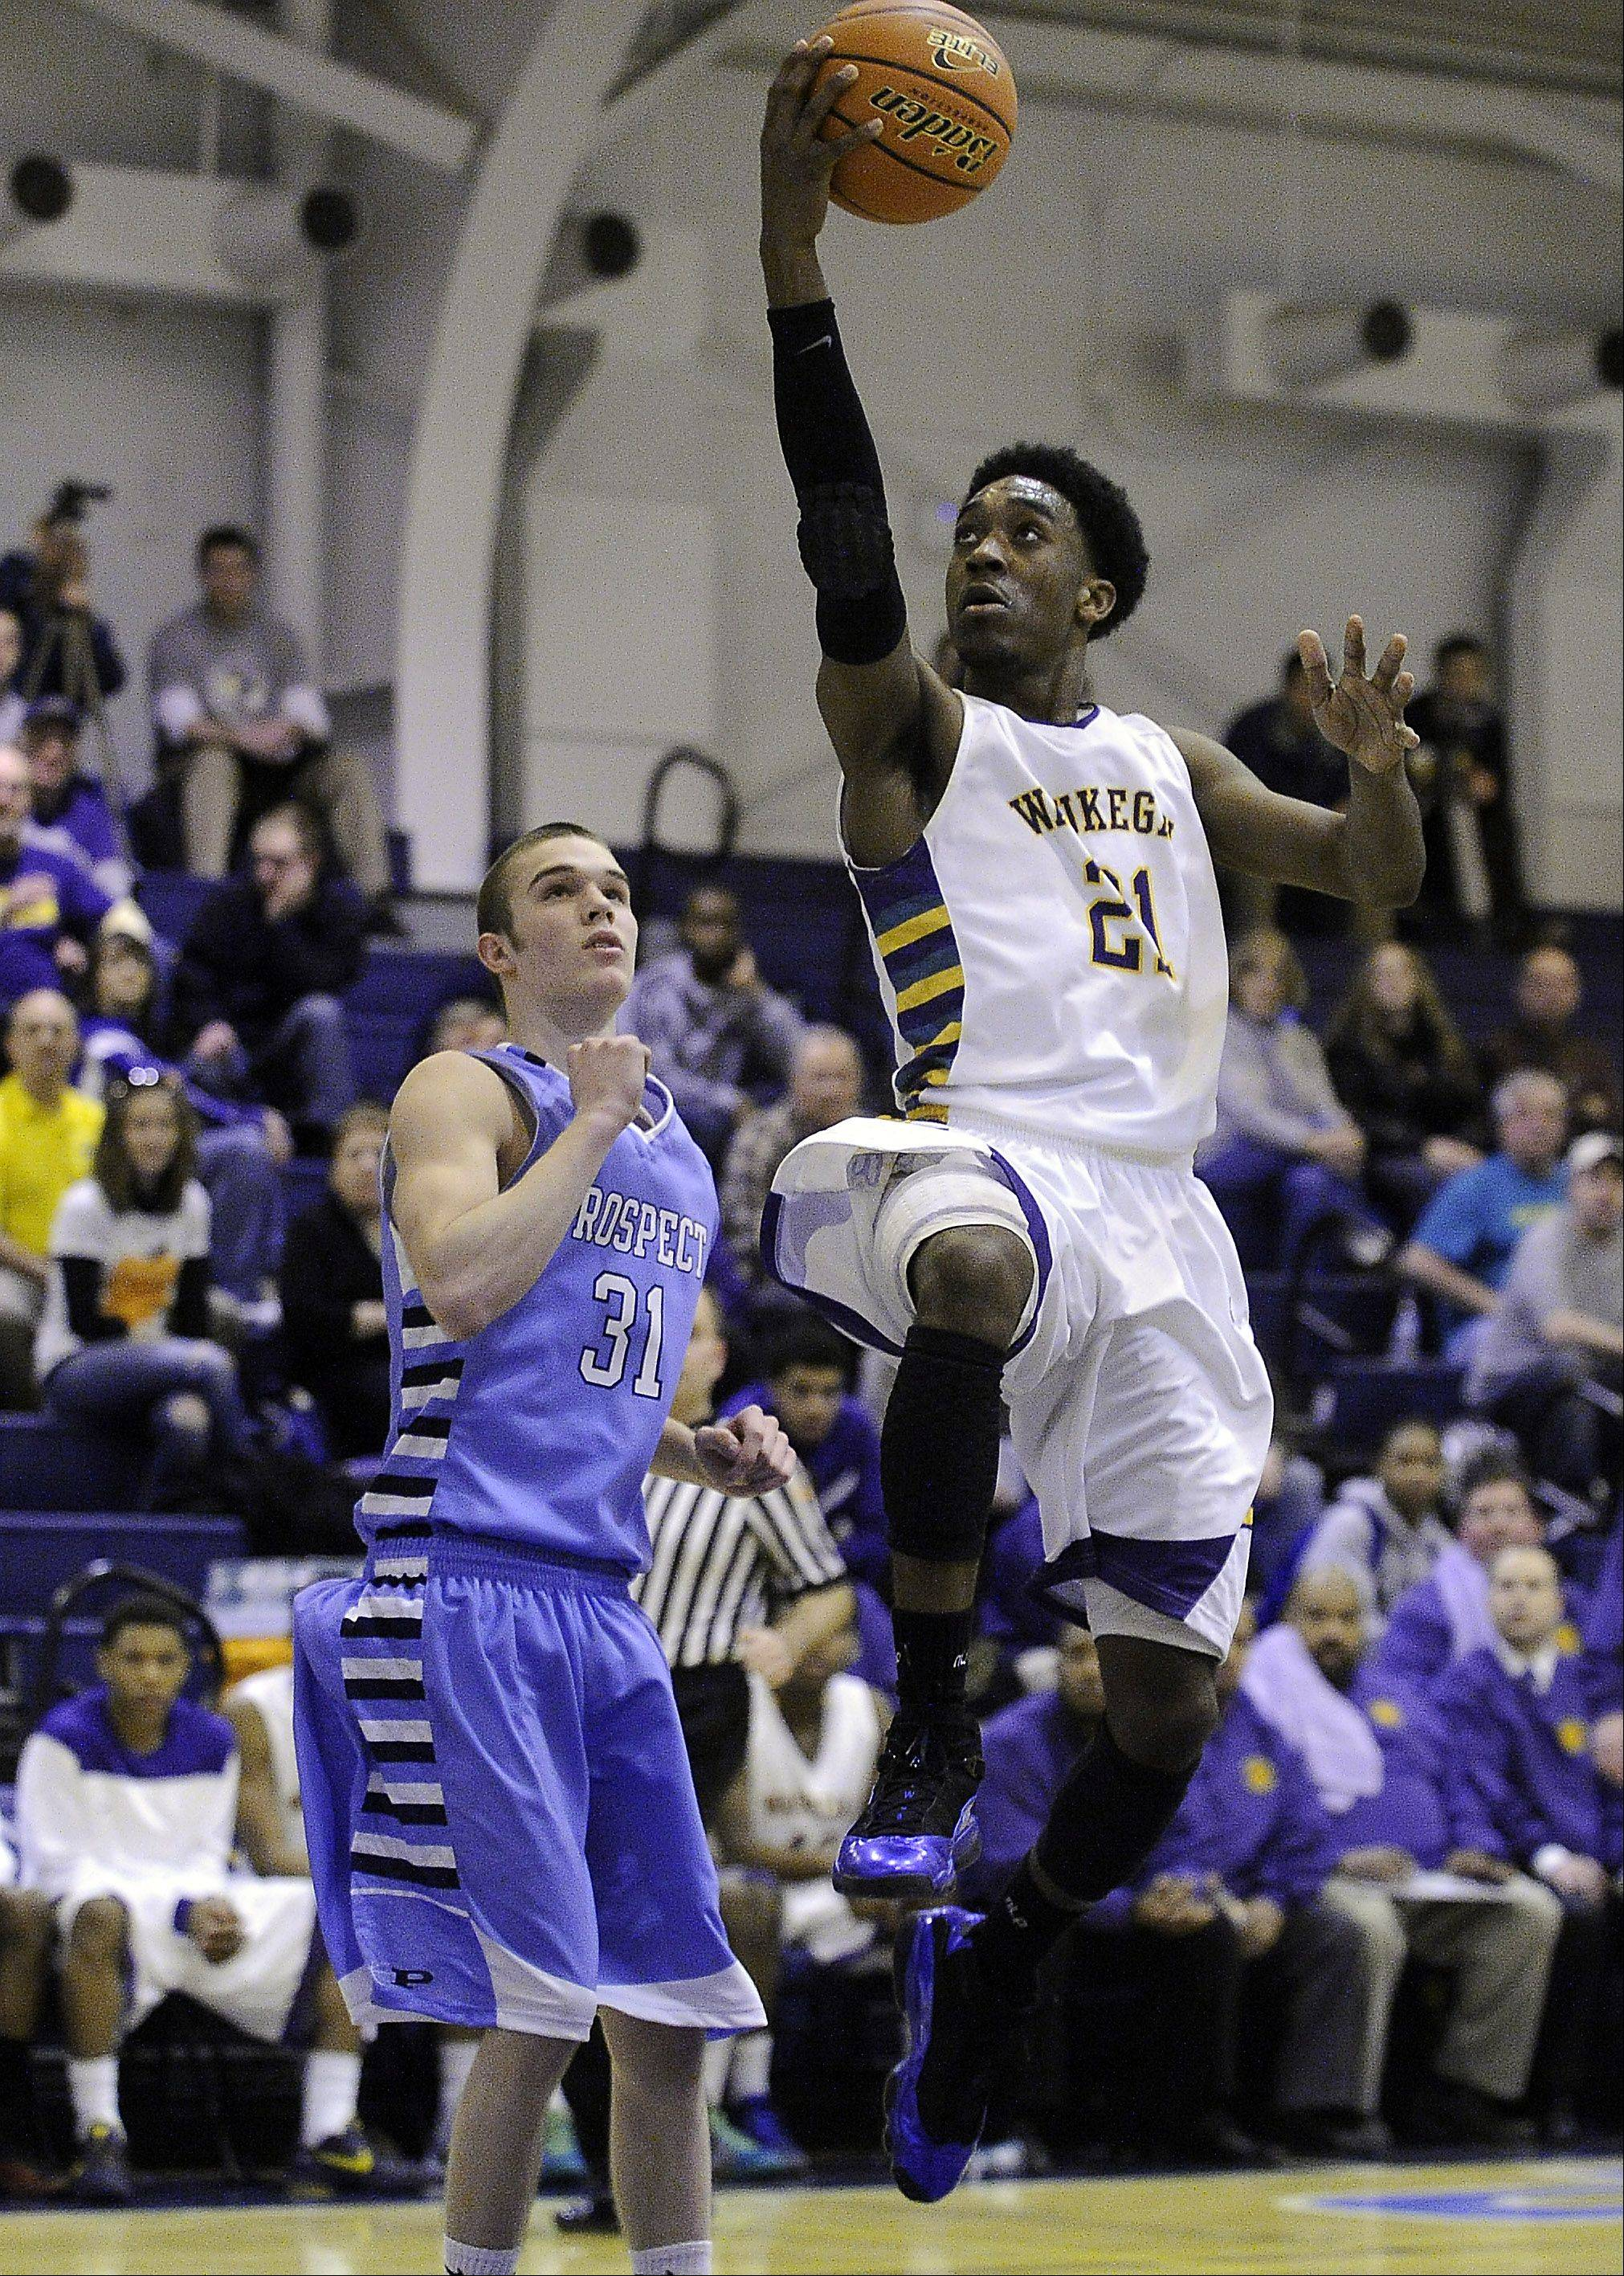 Prospect's Jake Young and the rest of the defense try to stop Waukegan's Devonte Taylor in the second half.